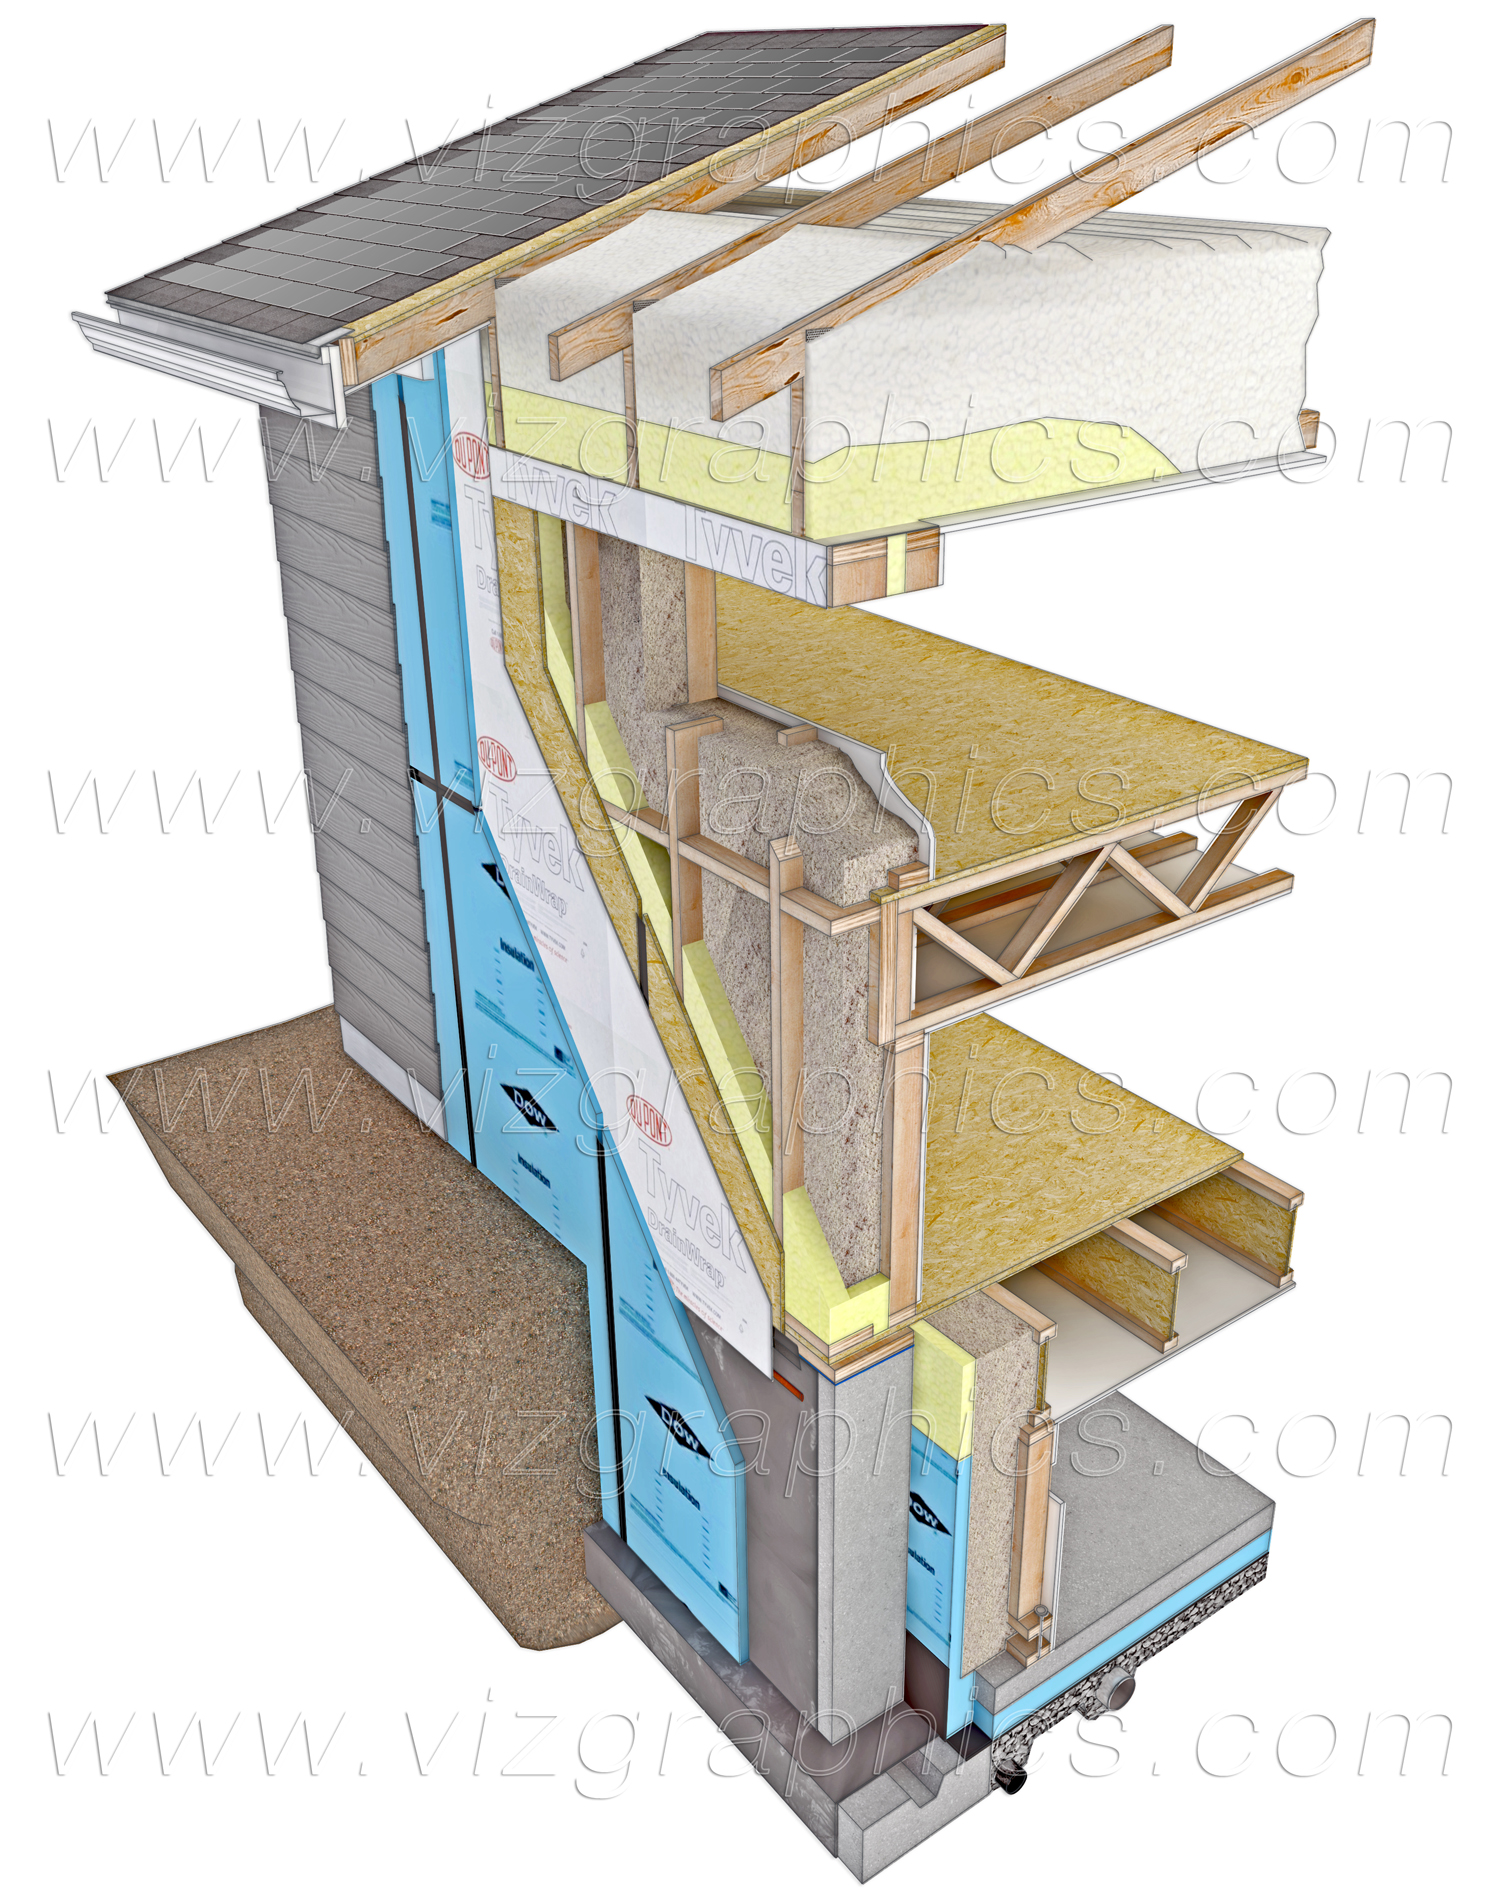 Modern Hacienda With Asymmetrical Lines further Idea Sip Home Plans Or Sip Floor Plans Find House Plans For Sips House Plans 82 Modular Sip Home Plans also Earth Sheltered Homes further Cooke additionally Prefab Earth Sheltered Homes By Green. on passive house floor plans